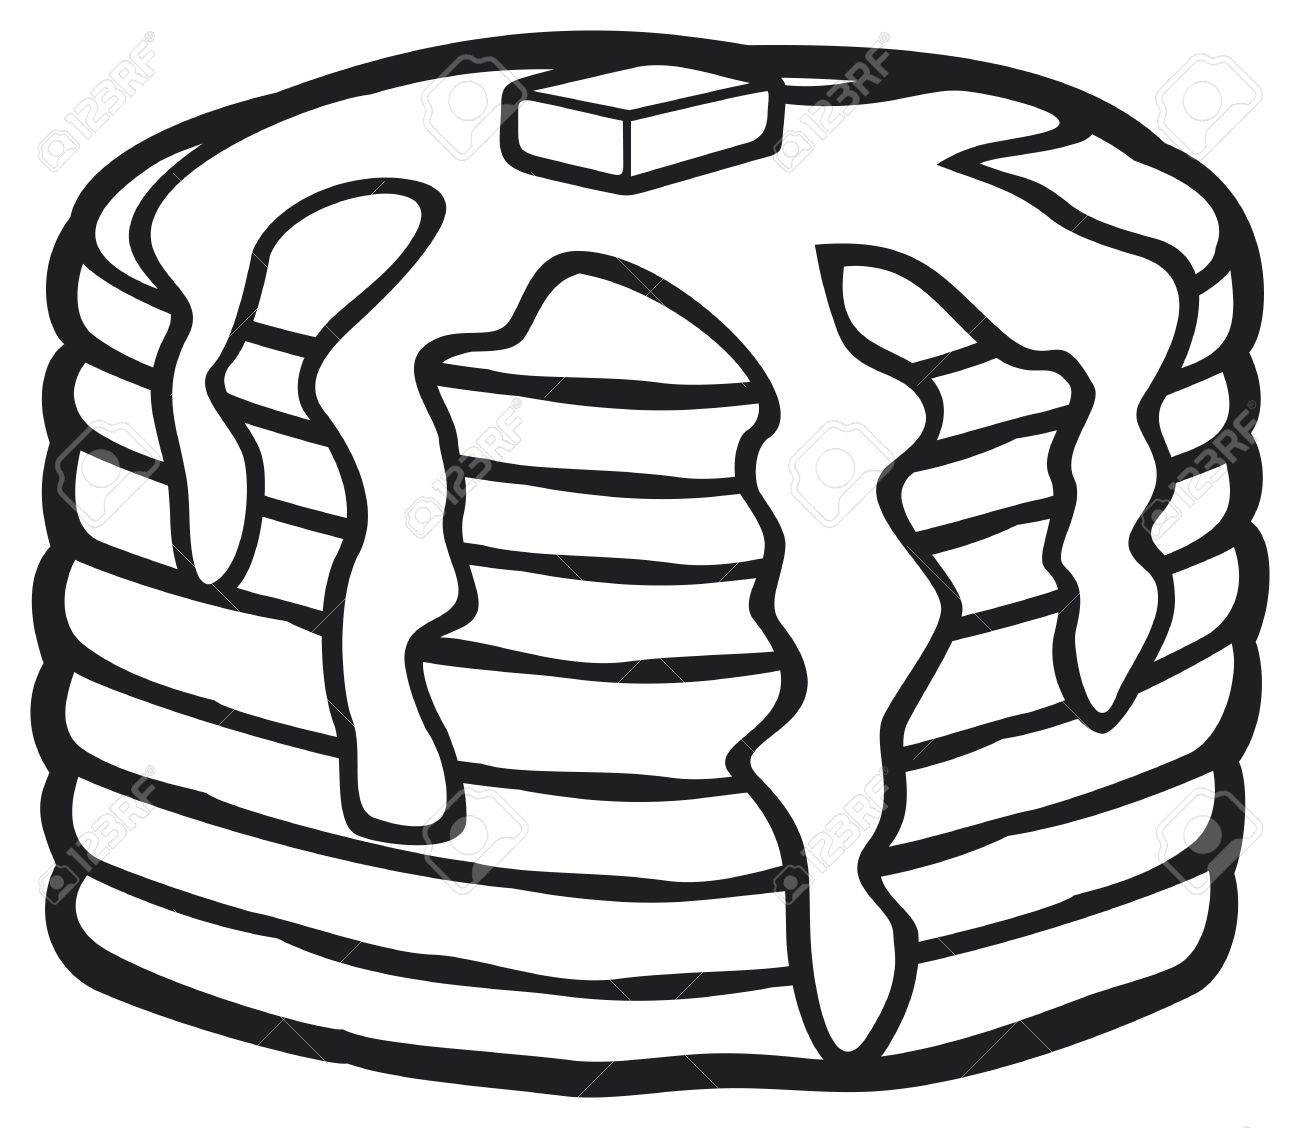 picture black and white download Station . Pancakes black and white clipart